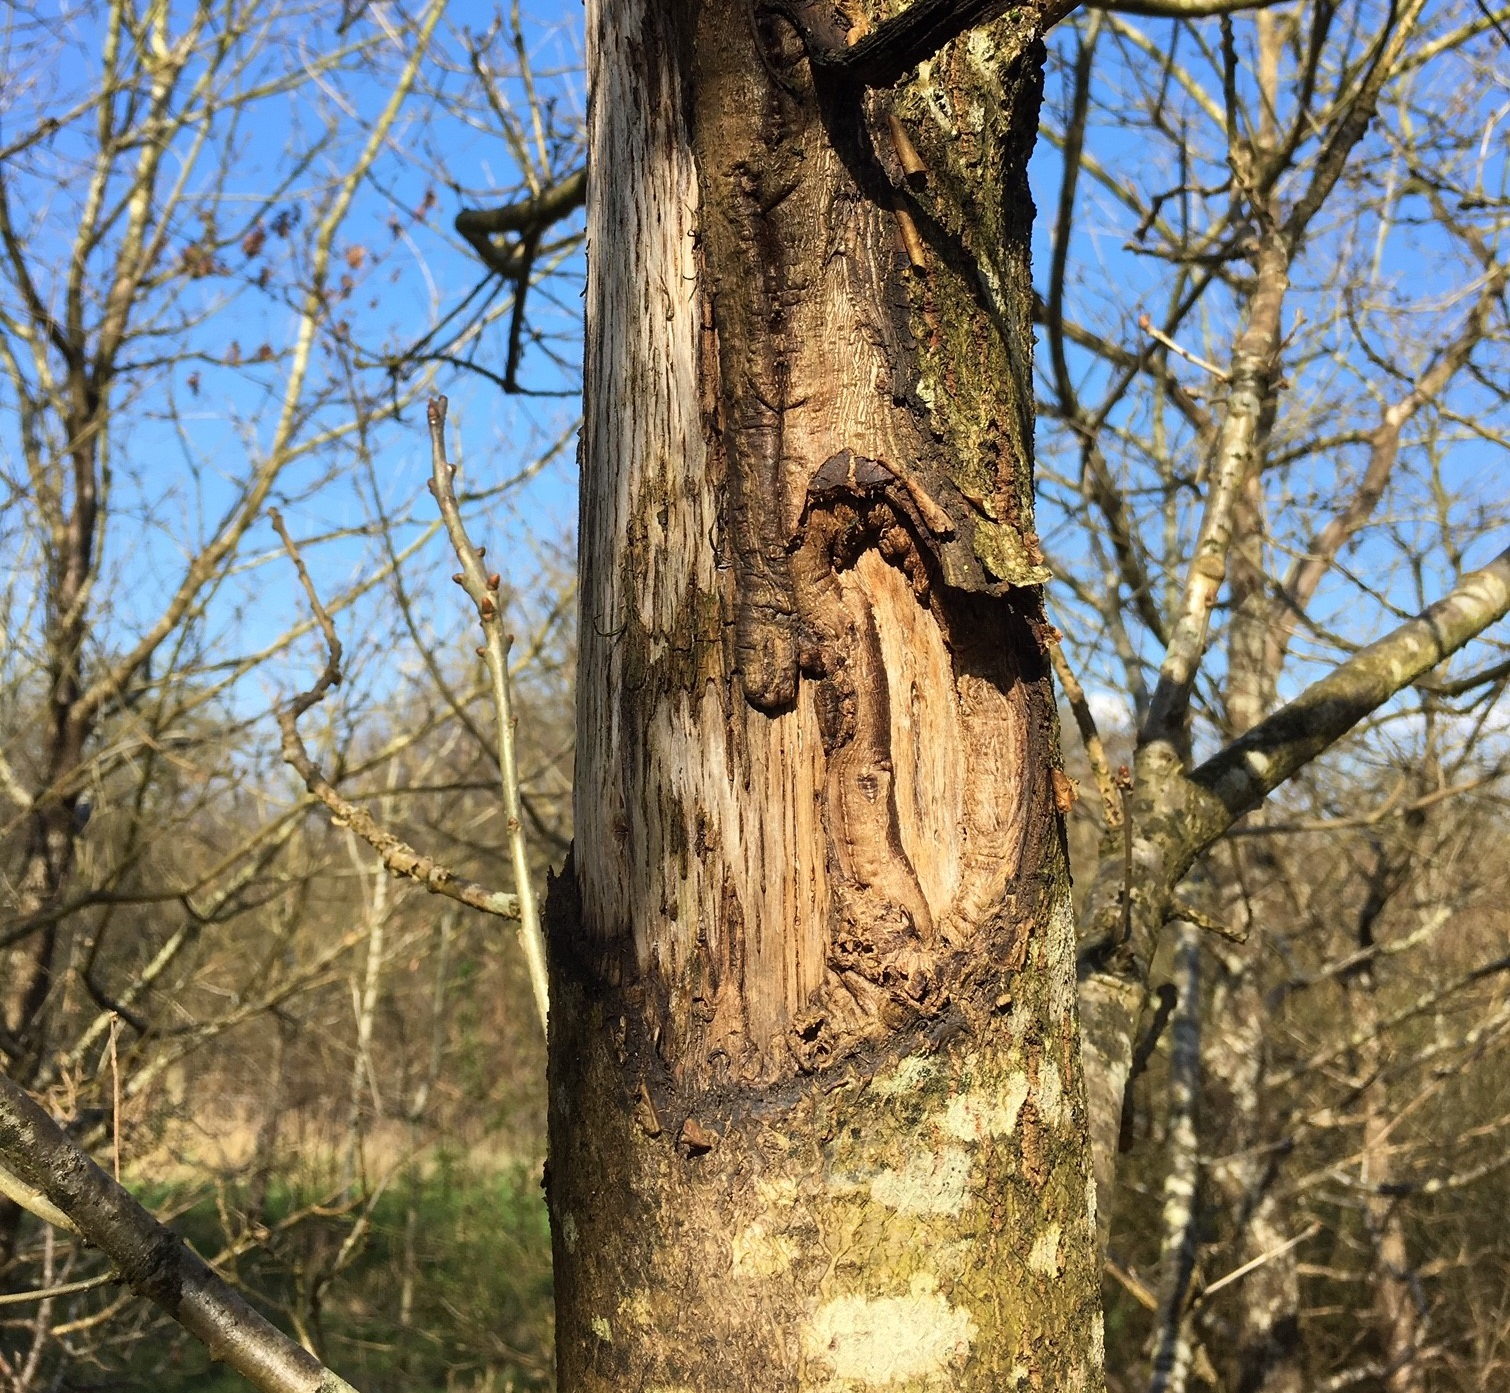 Grey squirrel bark stripping damage by National Forest